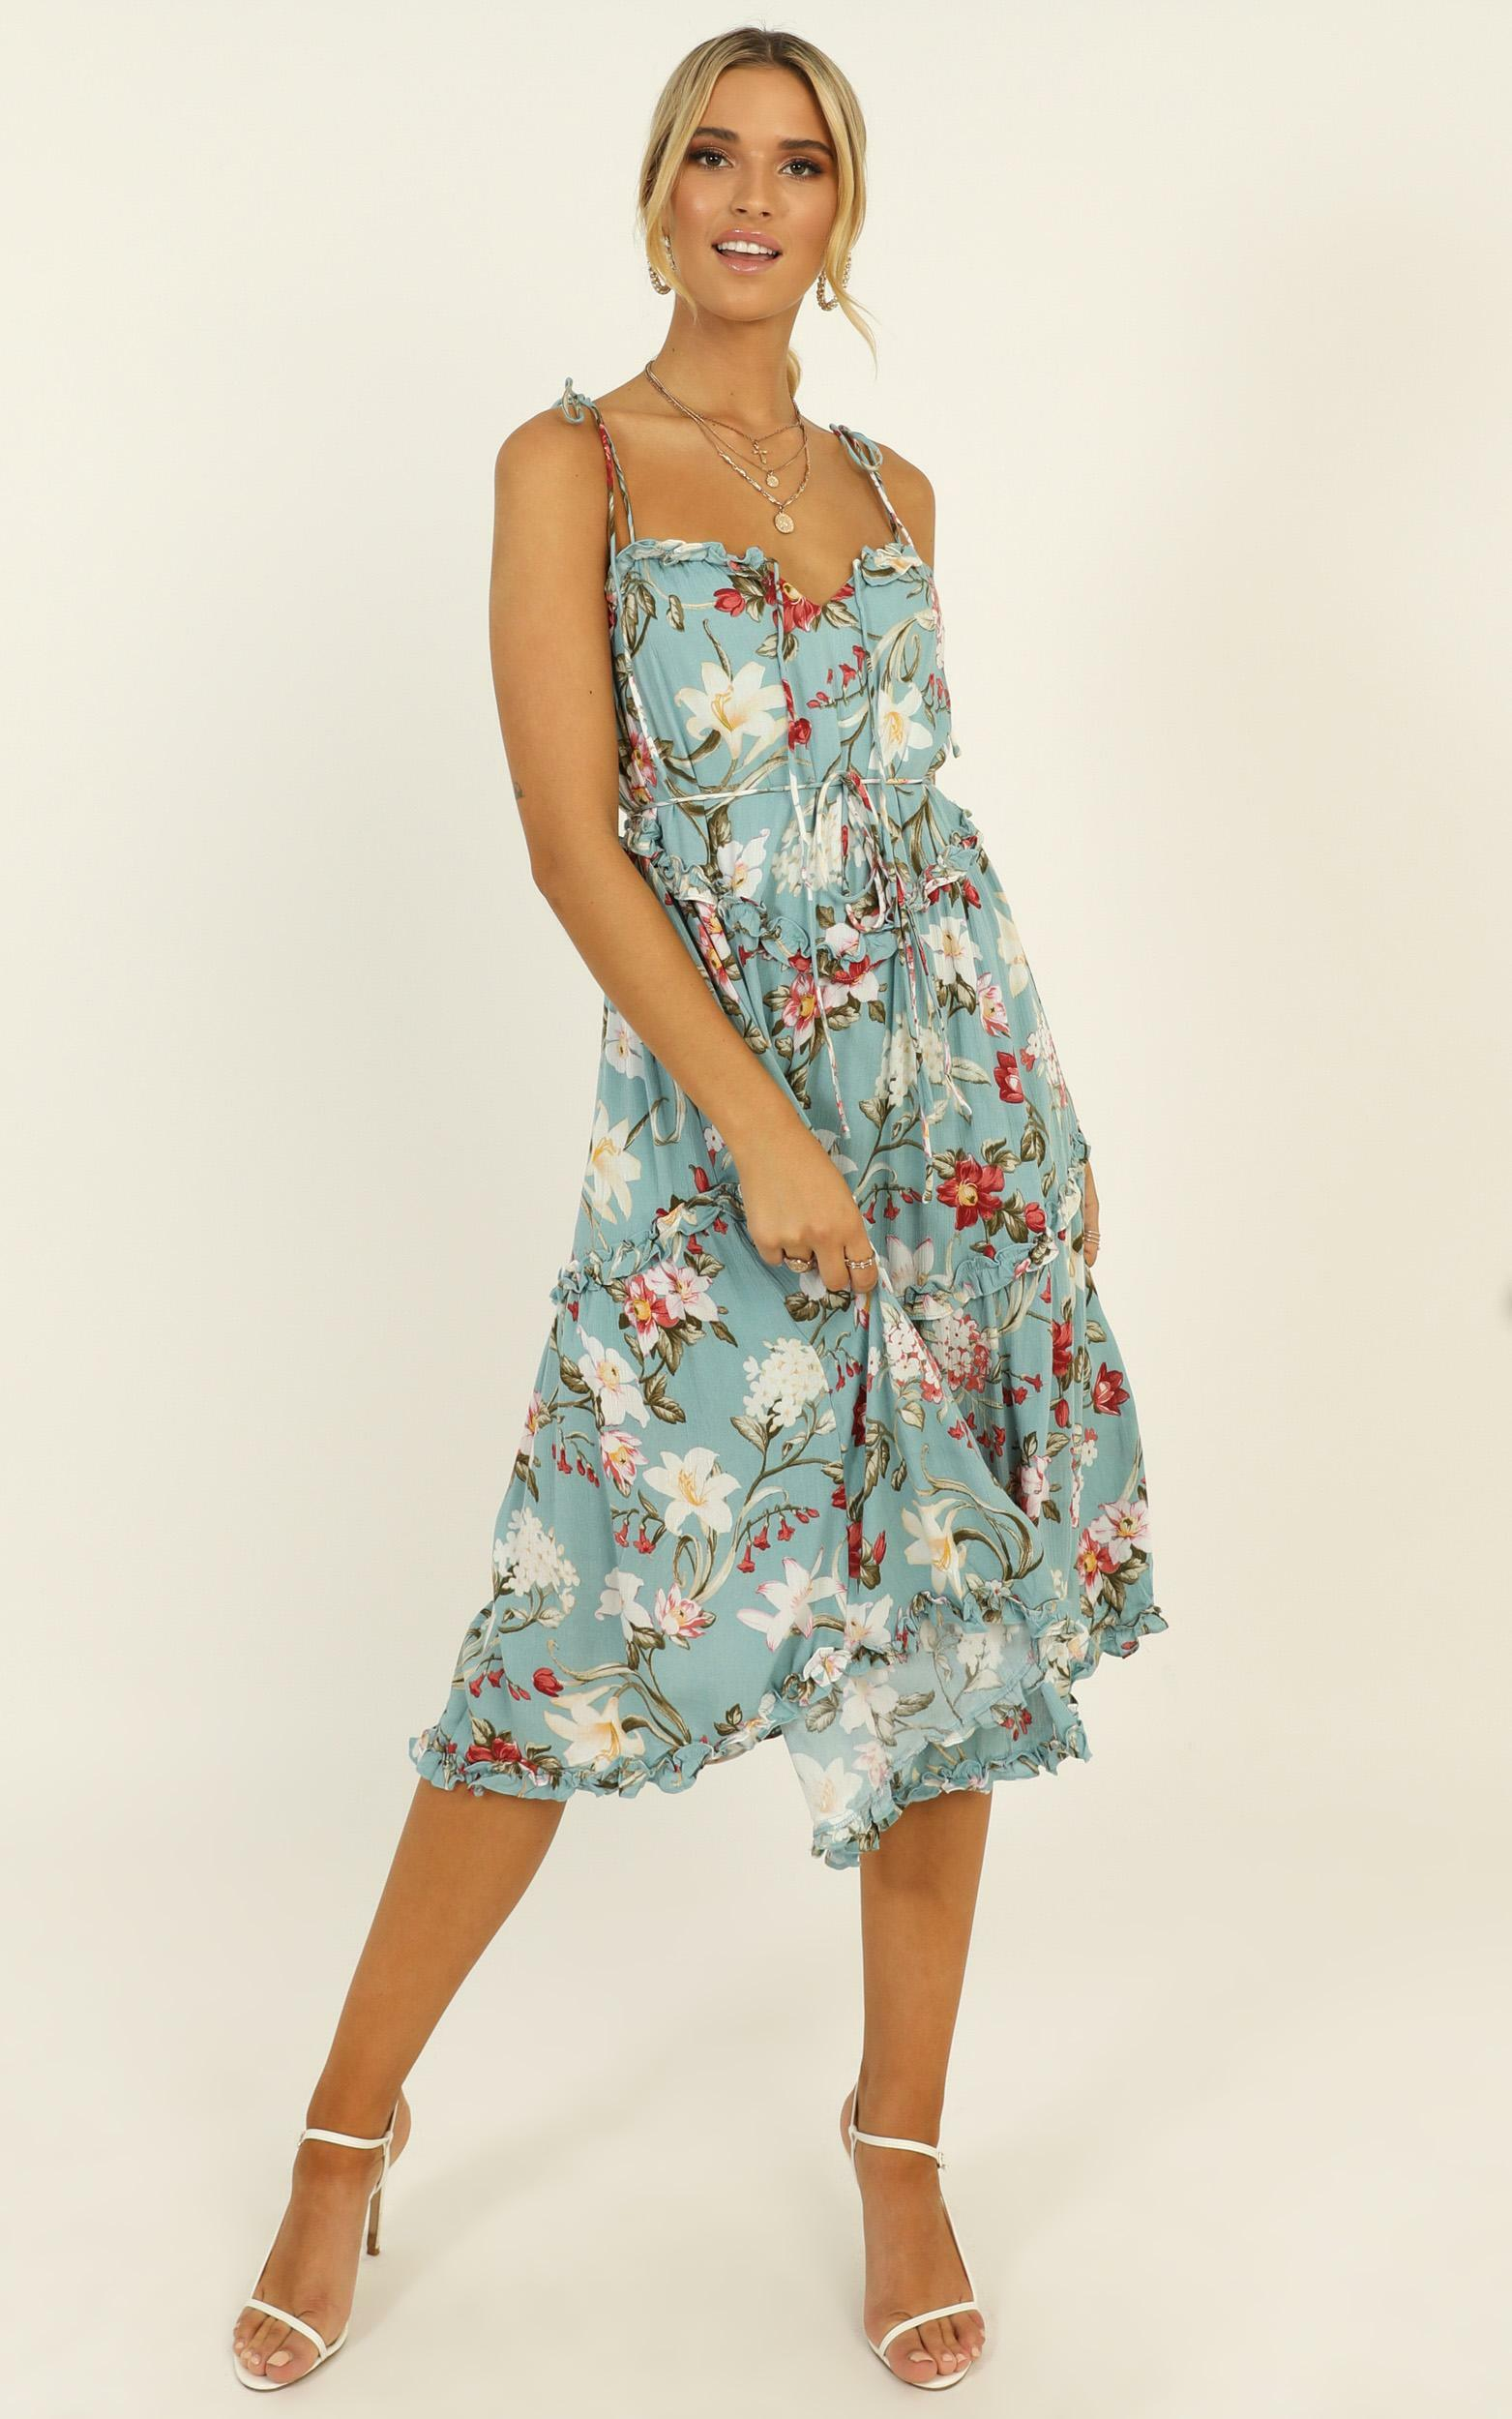 Lost In Yesterday Midi Dress in blue floral - 12 (L), Blue, hi-res image number null